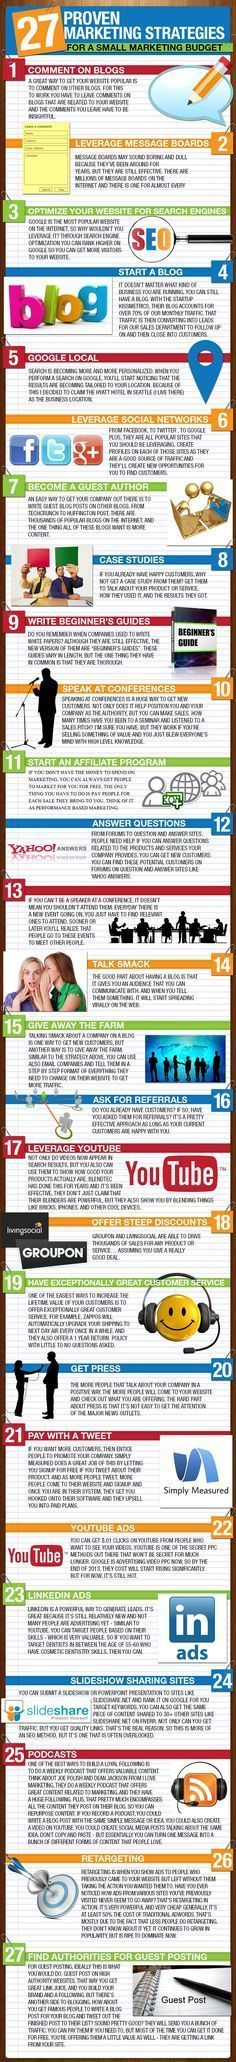 27 Proven Marketing Strategies To Double Your Traffic In Under 30 Days business infographic social media marketing promoting entrepreneur business tips entrepreneurship startups small business startup tips marketing tip marketing tips small buiness tips #followback #entrepreneur #startup #onlinebusiness